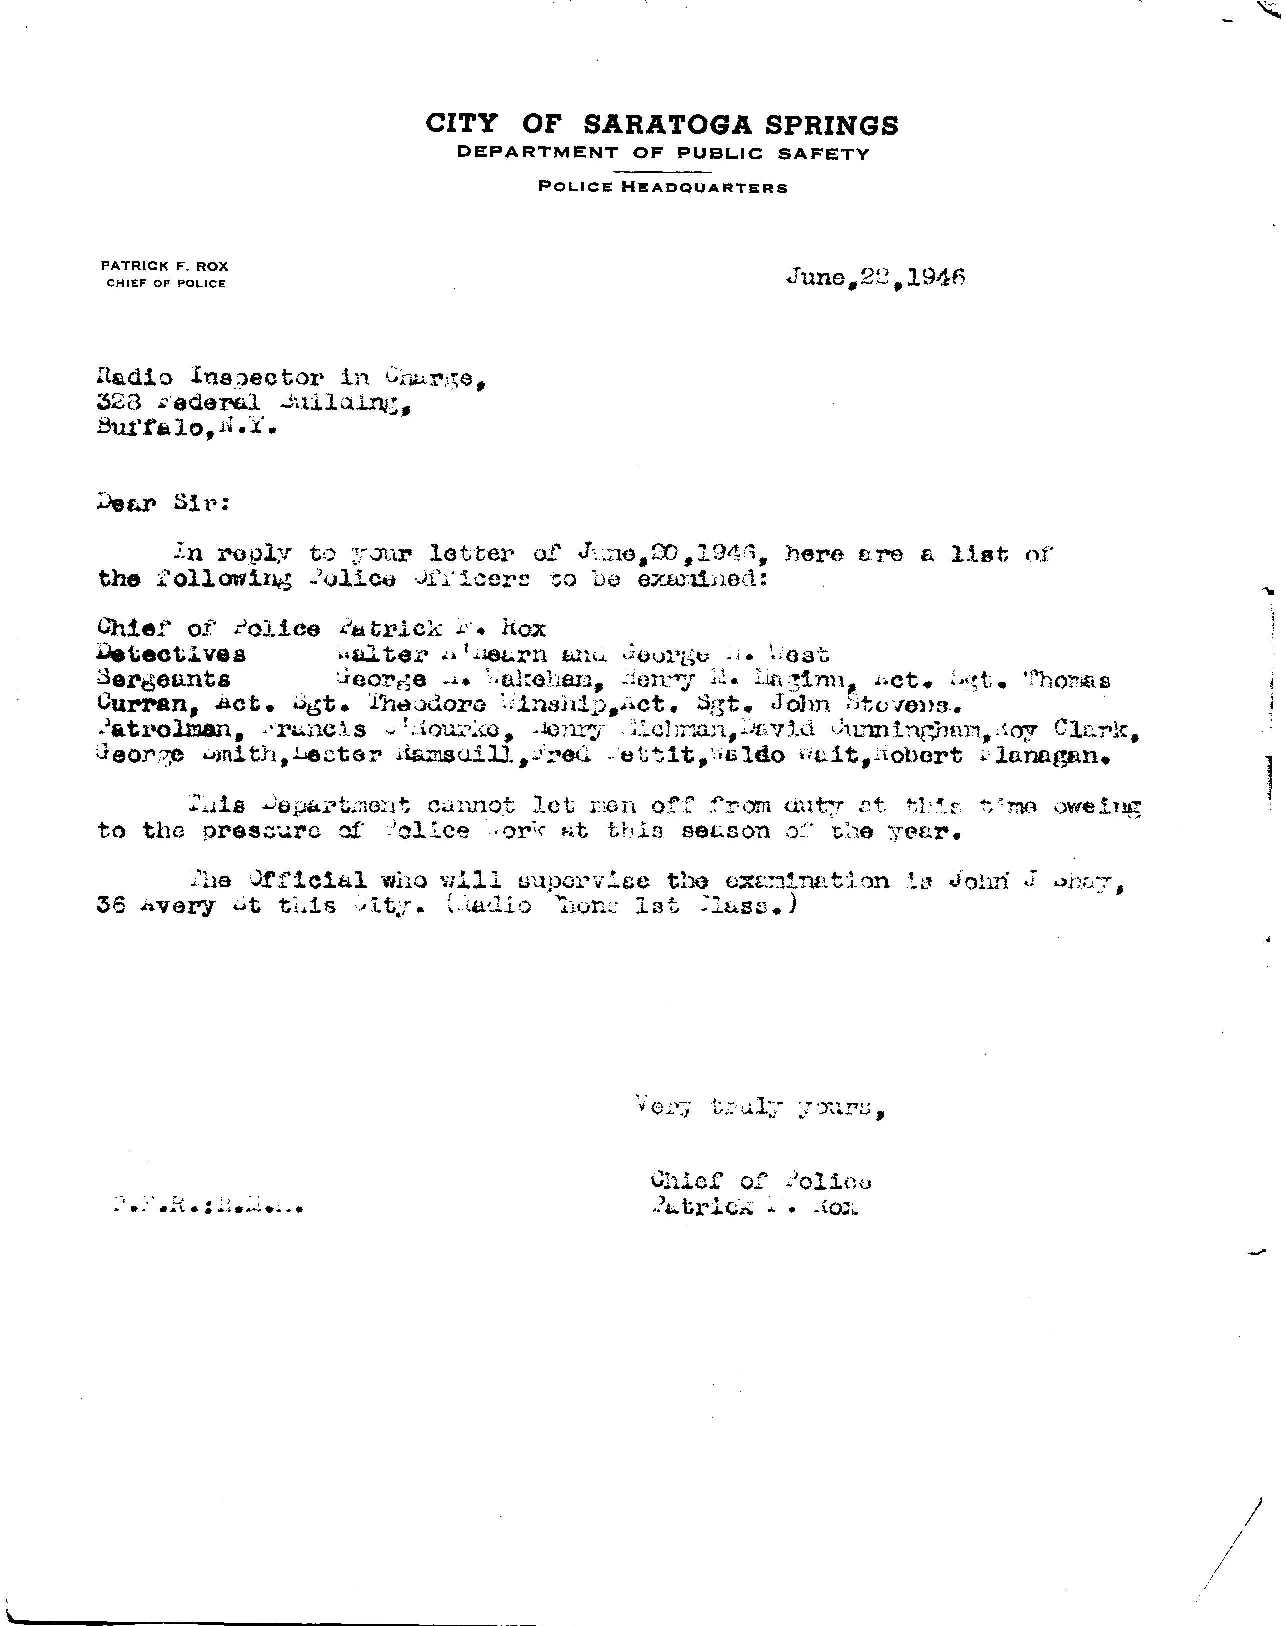 1946 letter from then police chief Patrick Rox